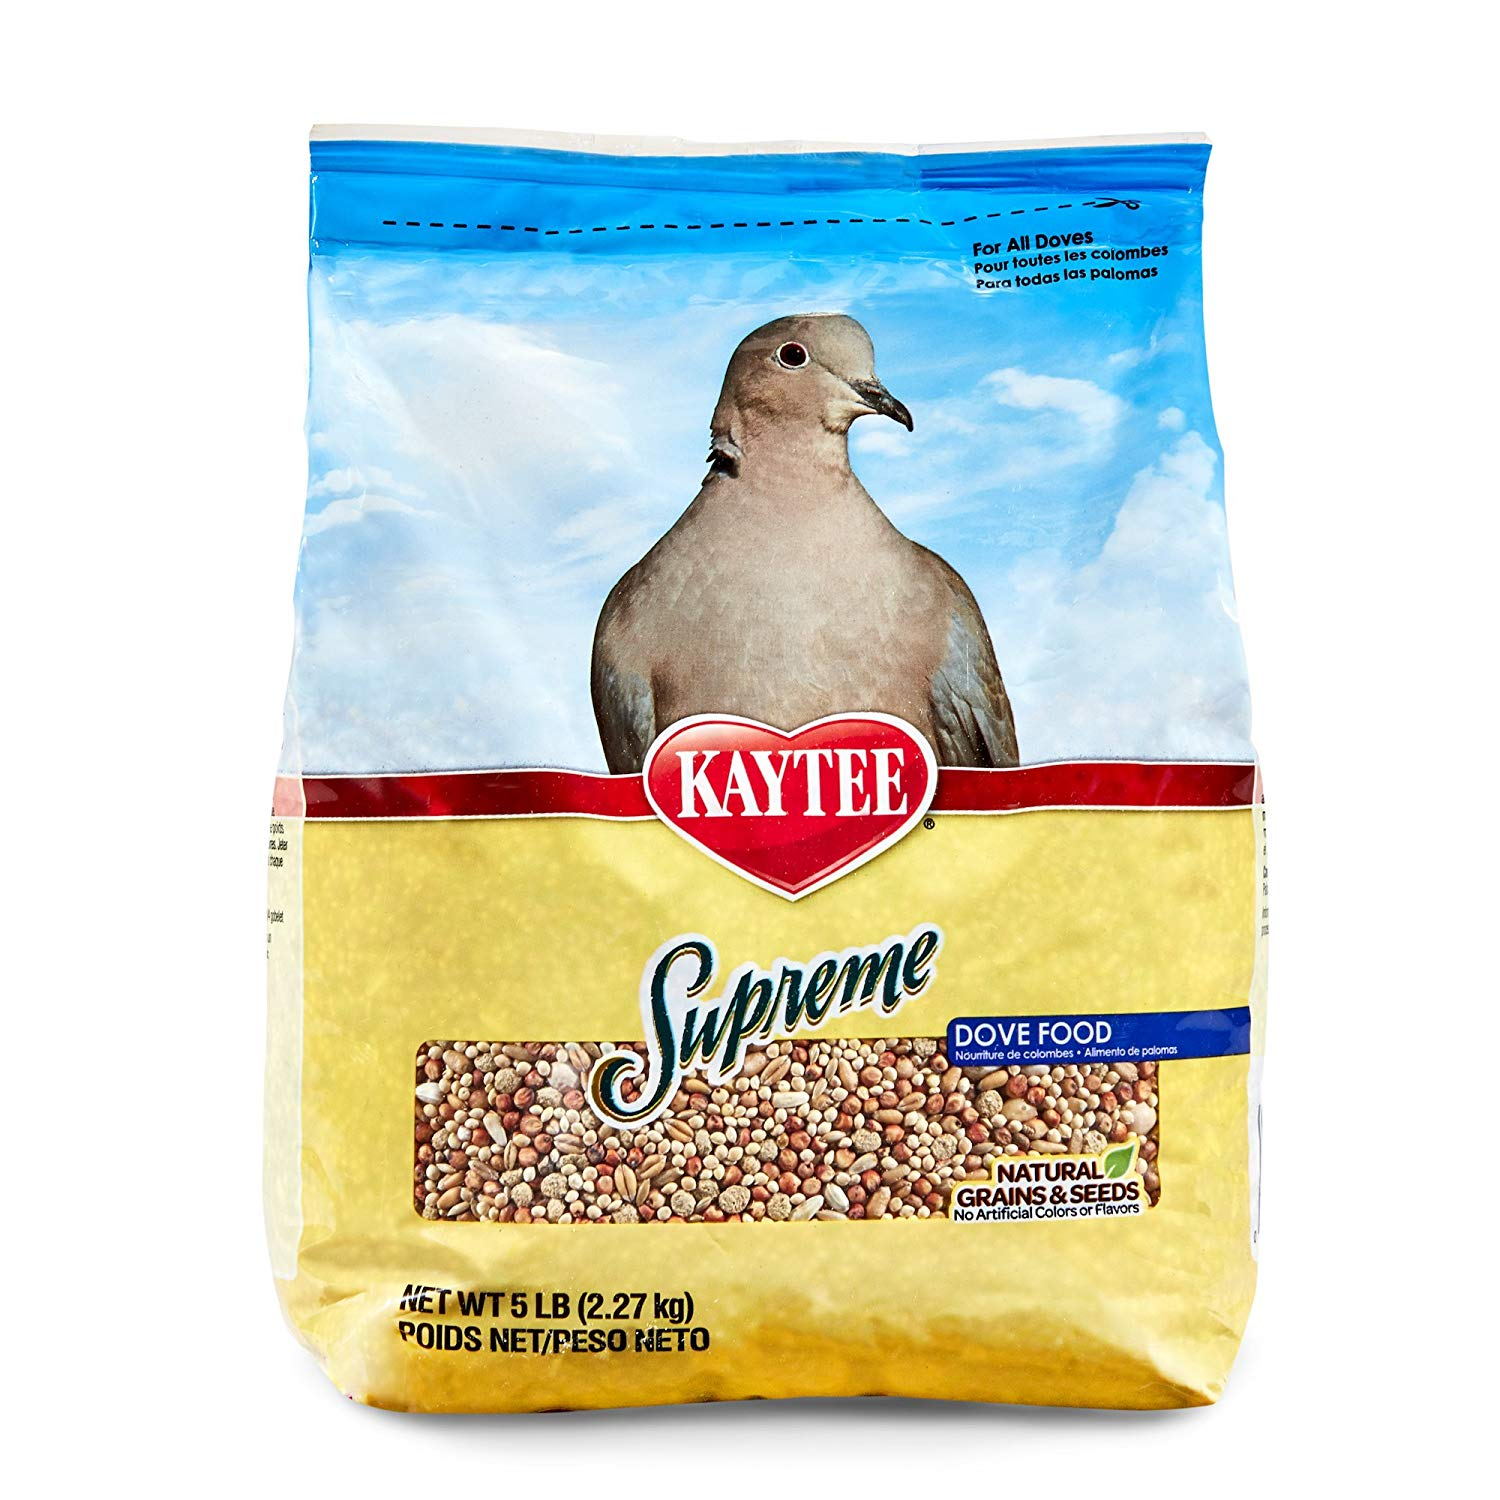 Kaytee Supreme Dove Food, 5 lbs